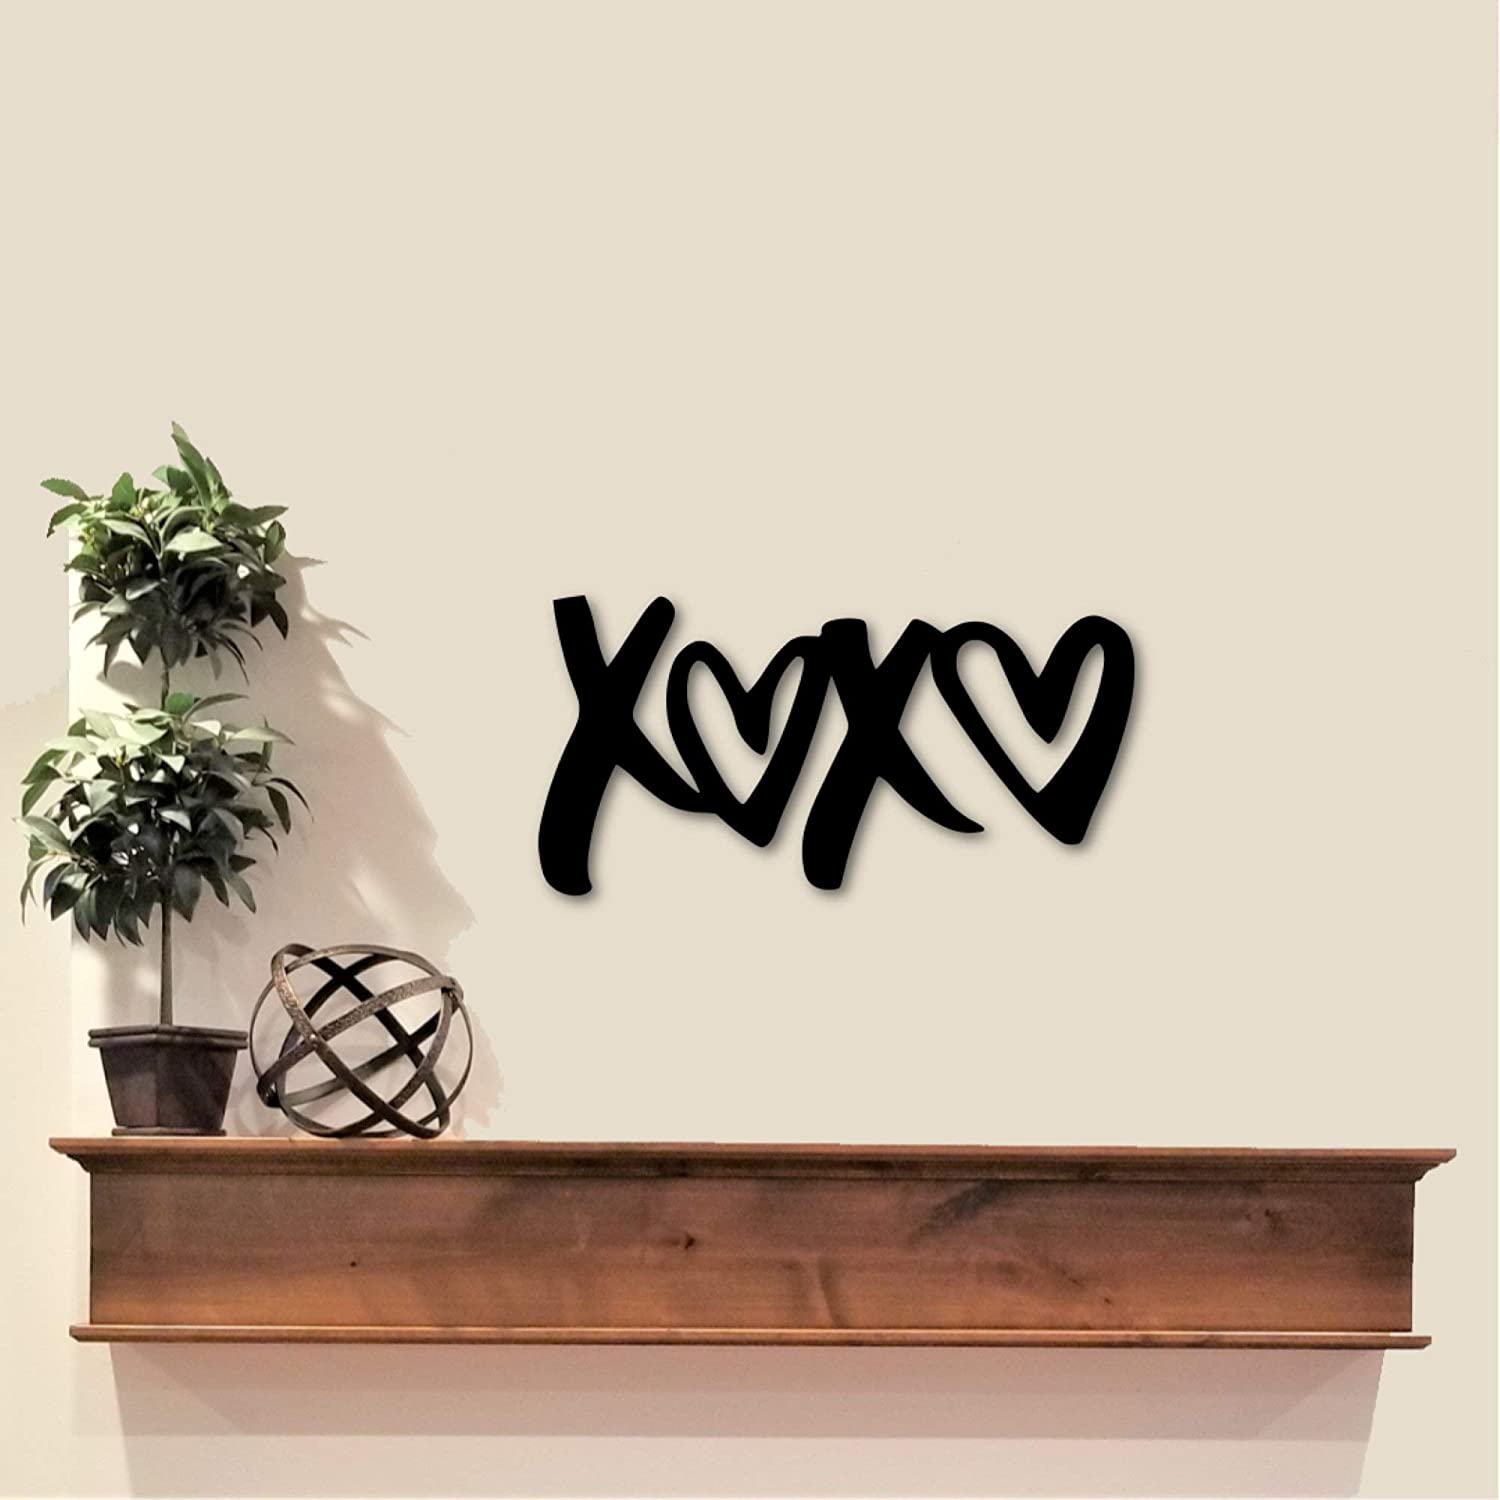 Love Bombing new Popular products work Decor XOXO Sign Hugs and Kisses Art Wall Valentine's Metal